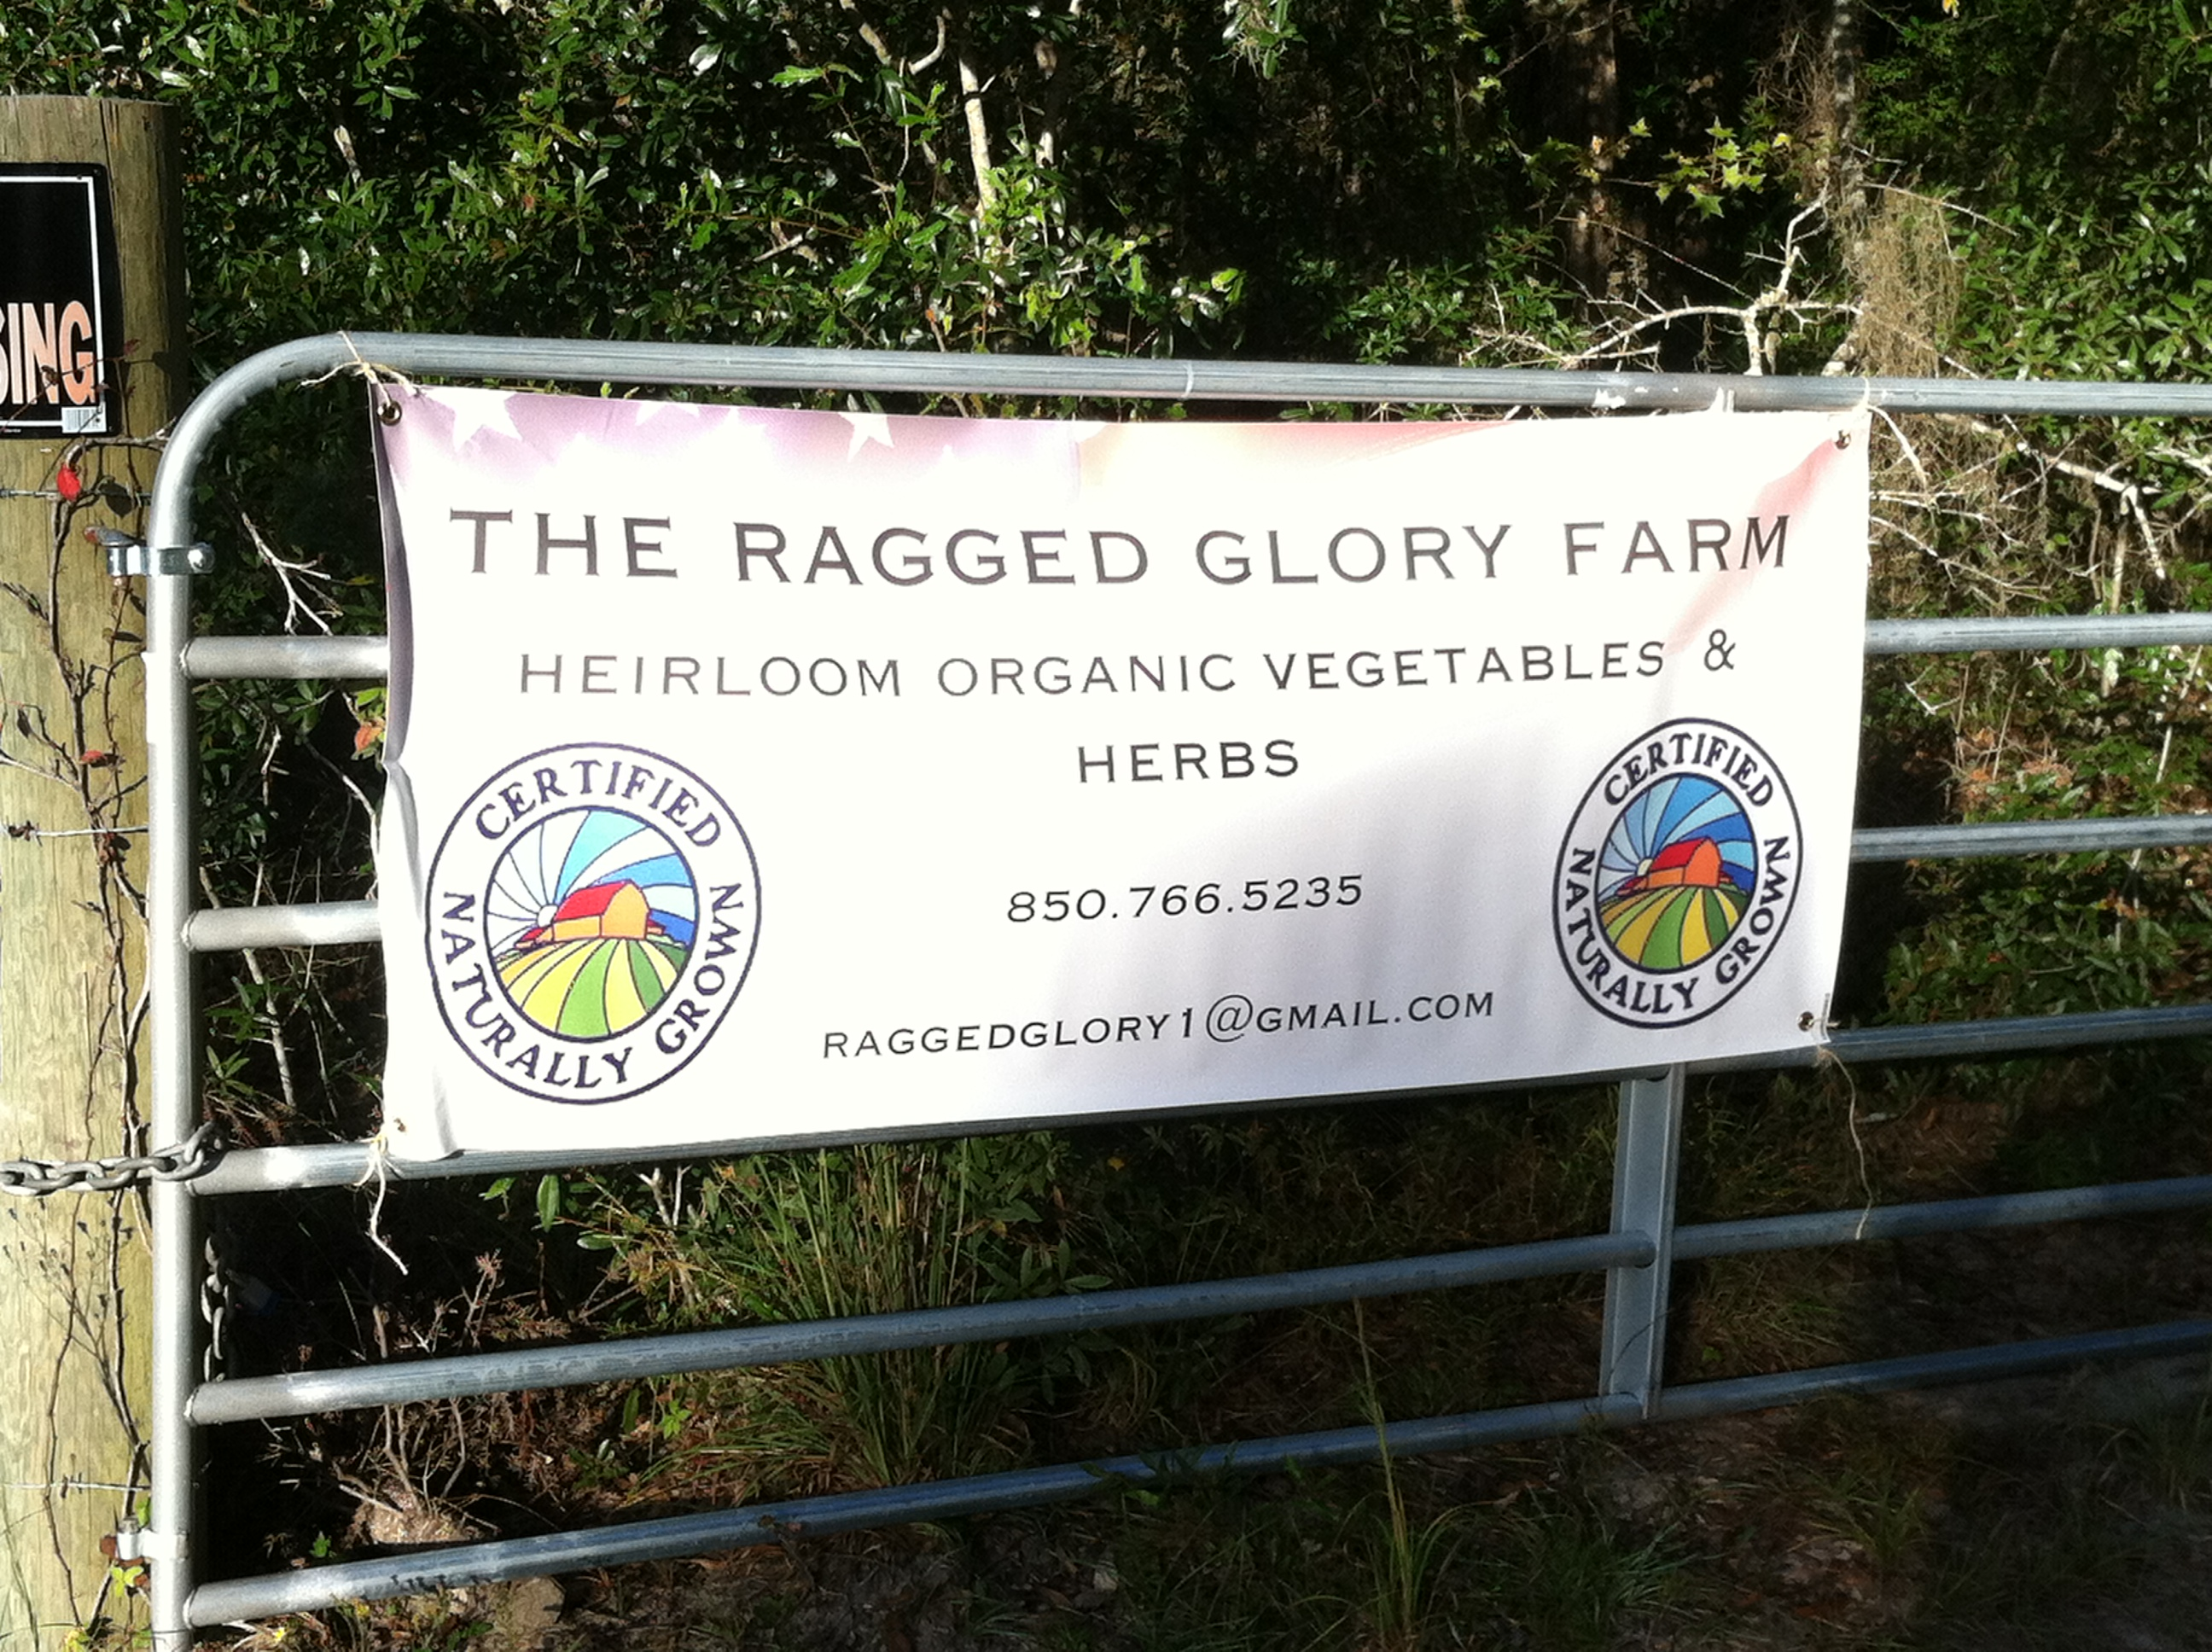 FL_Greg_Jubinsky_-_The_Ragged_Glory_-CNG_sign_2012-10-20_08.59.00.jpg